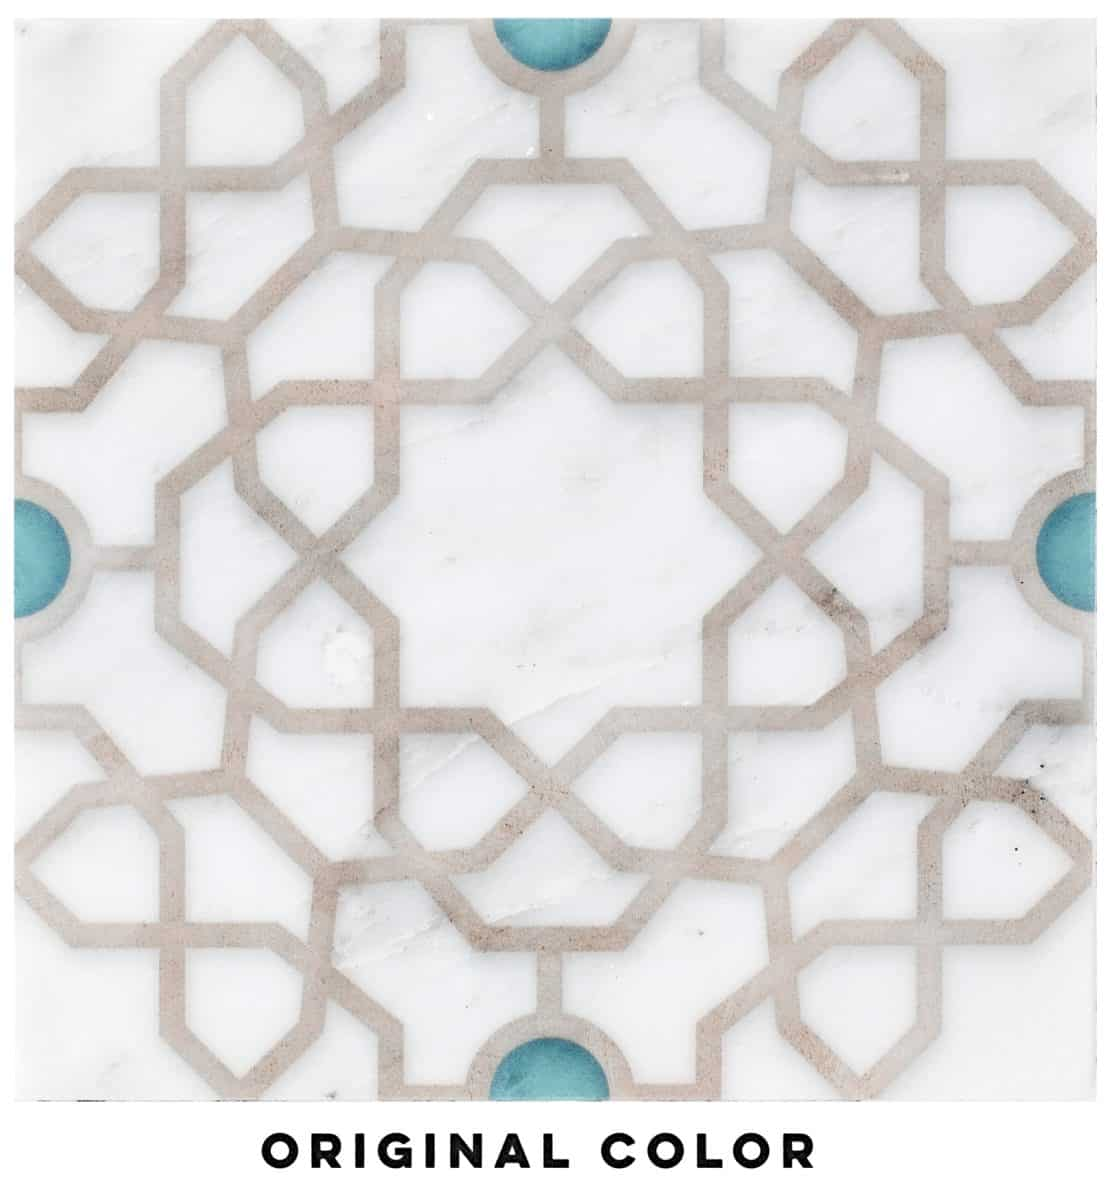 Medina Pattern Tile (turquoise) on Carrara marble